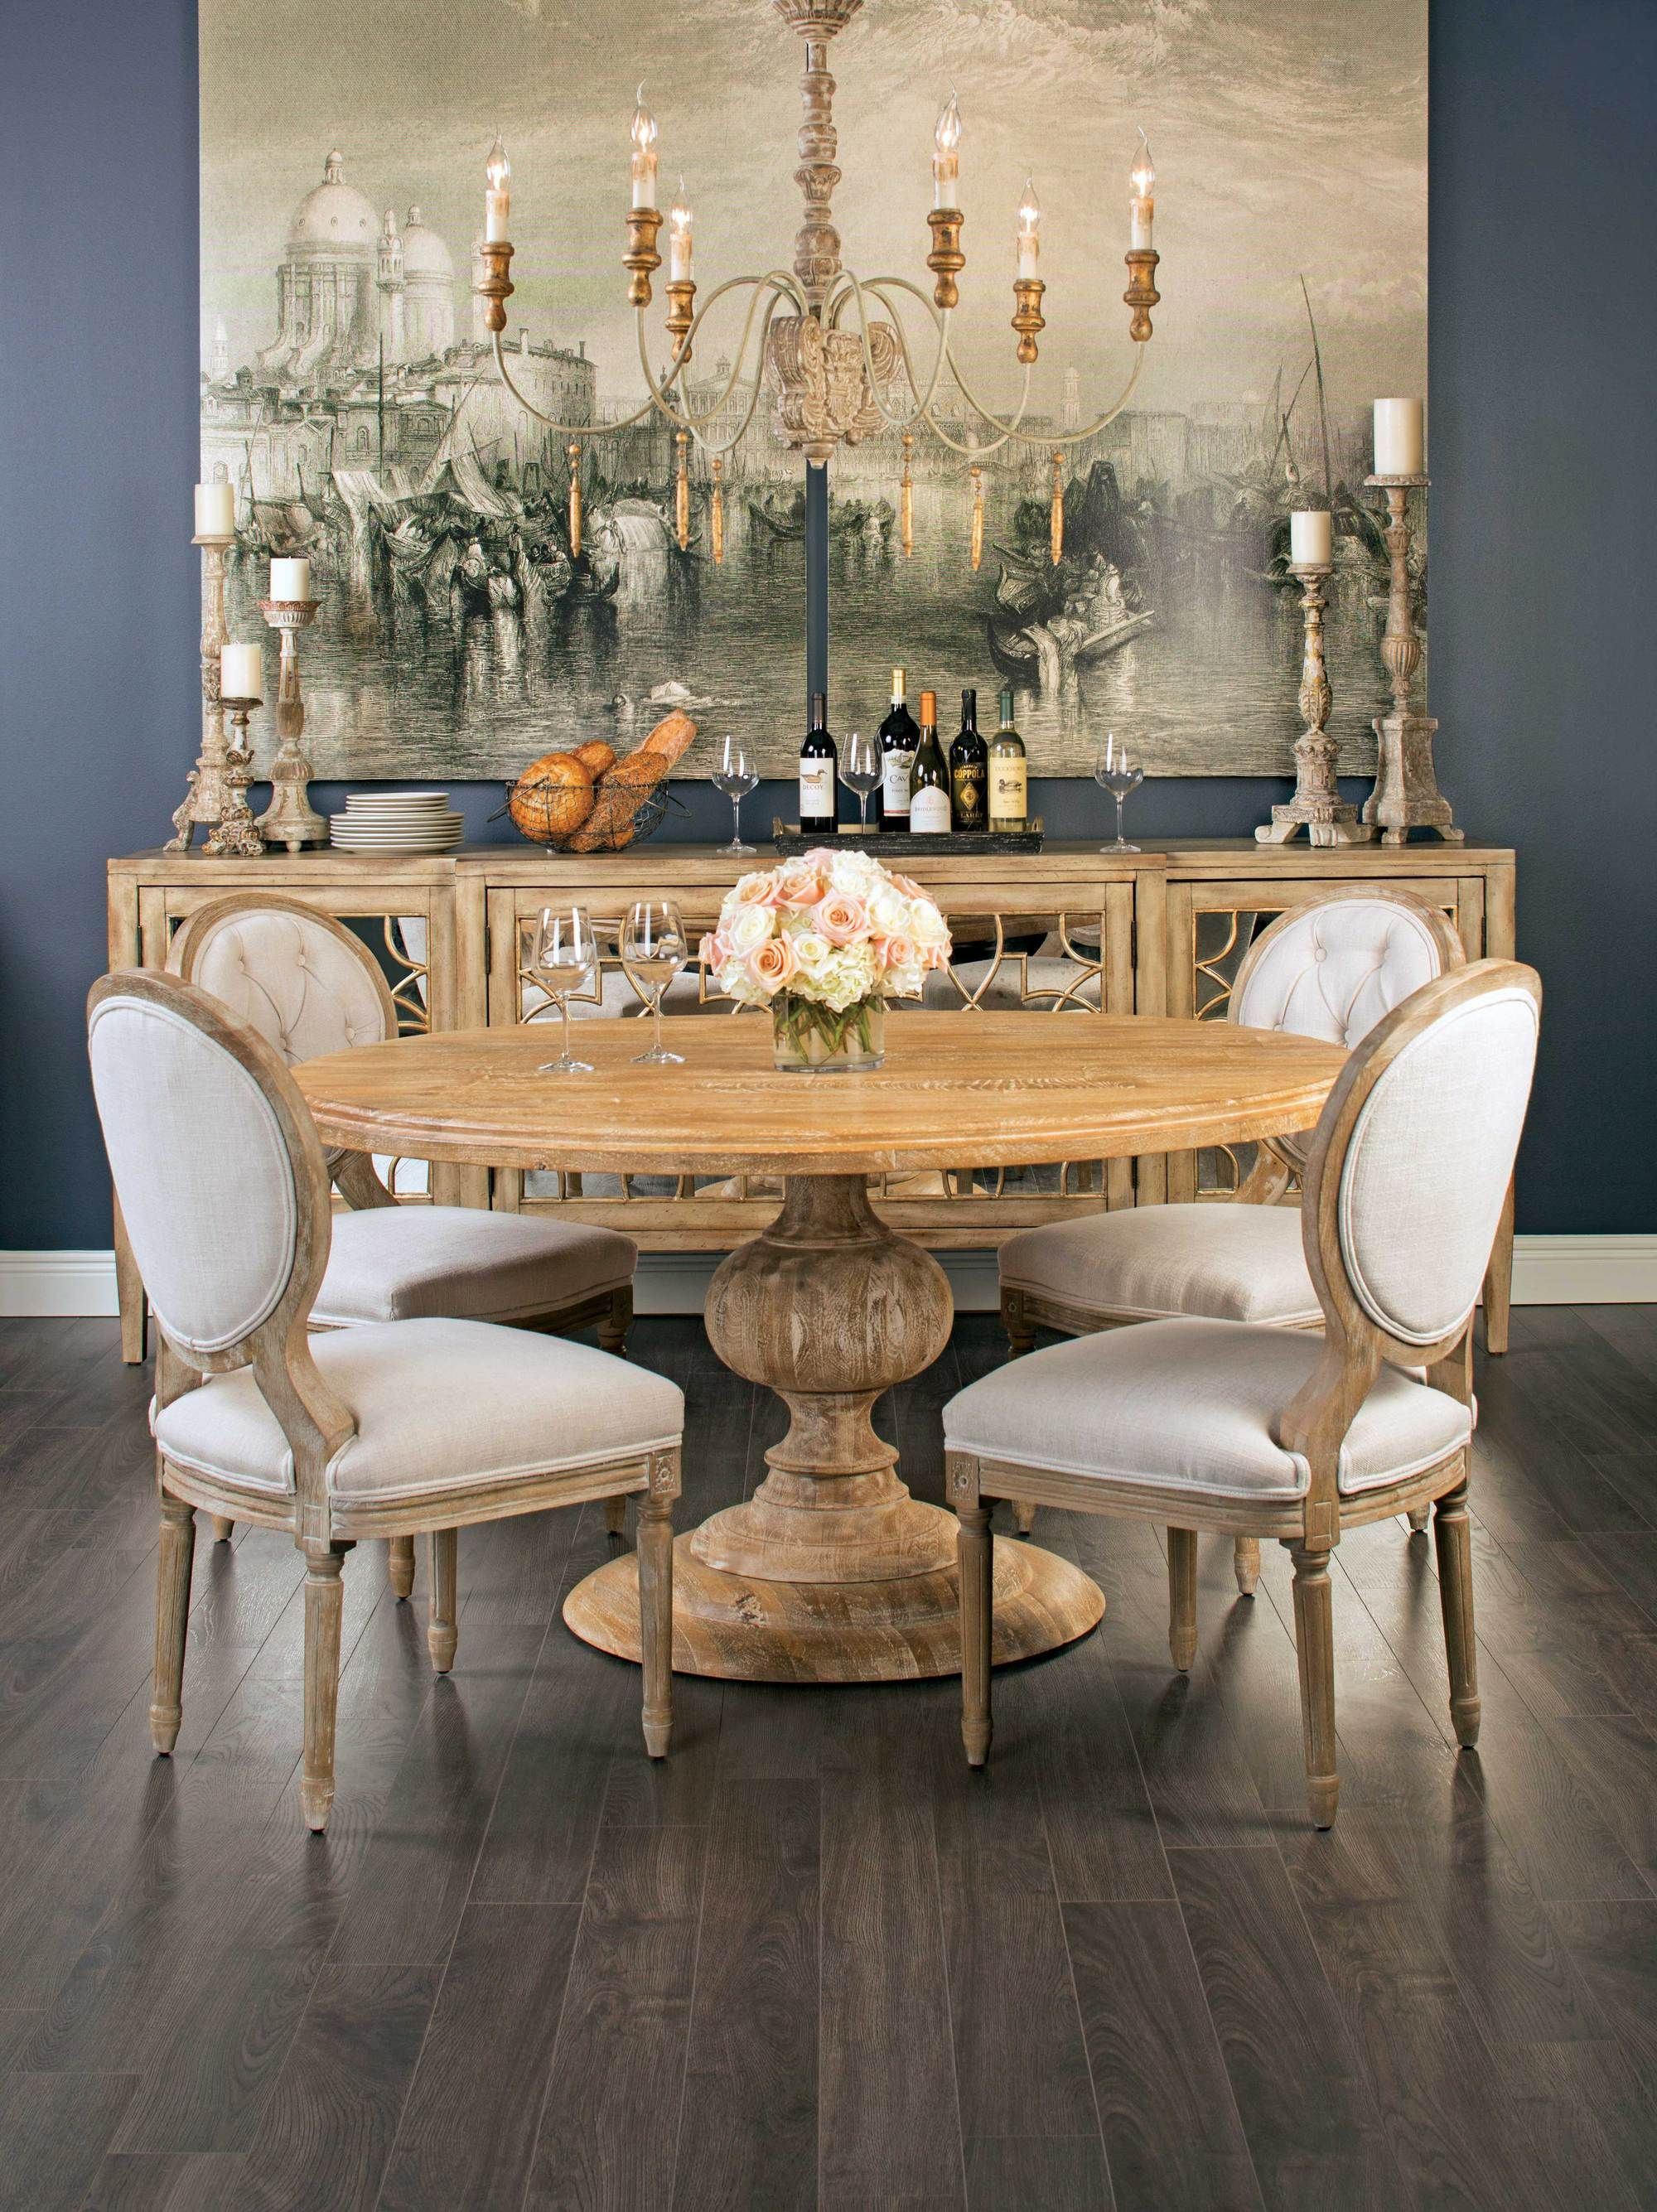 Magnolia Round Dining Table French Country Dining Room Country Dining Rooms Dining Room Table Decor